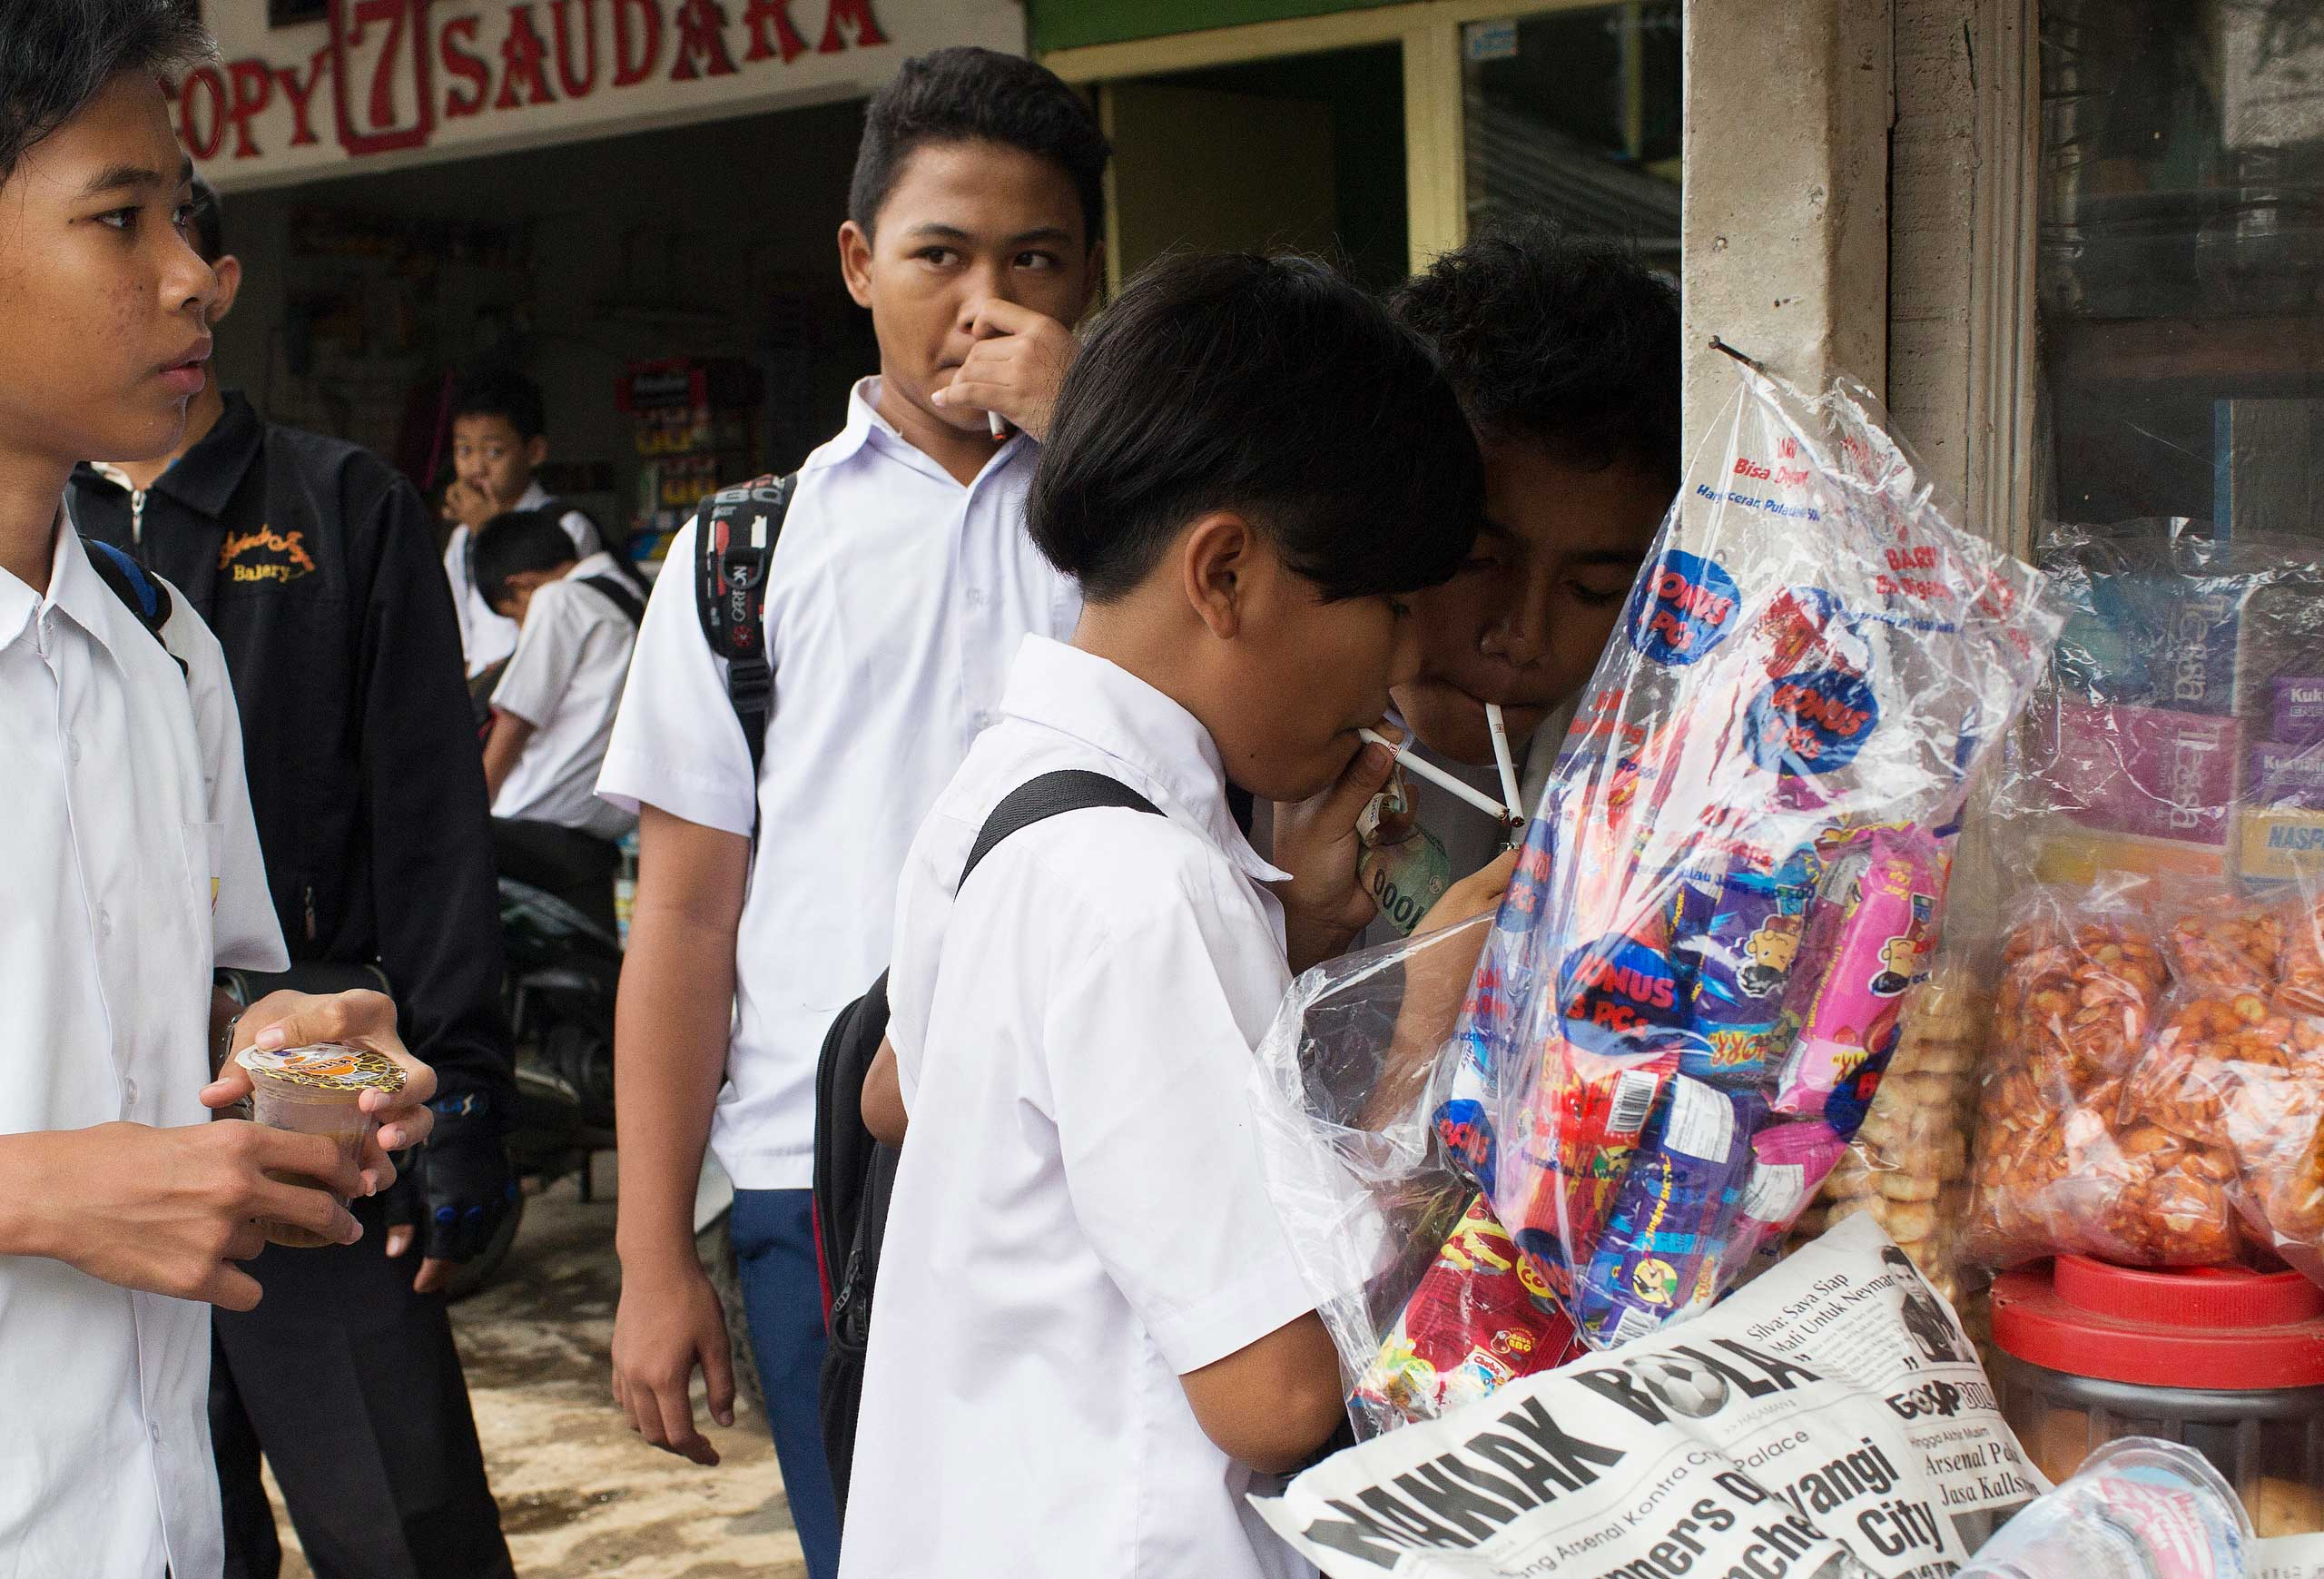 Groups of children buy single cigarettes and light them at a kiosk after school on February 12, 2014 in Jakarta, Indonesia. The children purchased cigarettes here without age identification and kiosks such as this one can be found near schools around the city.